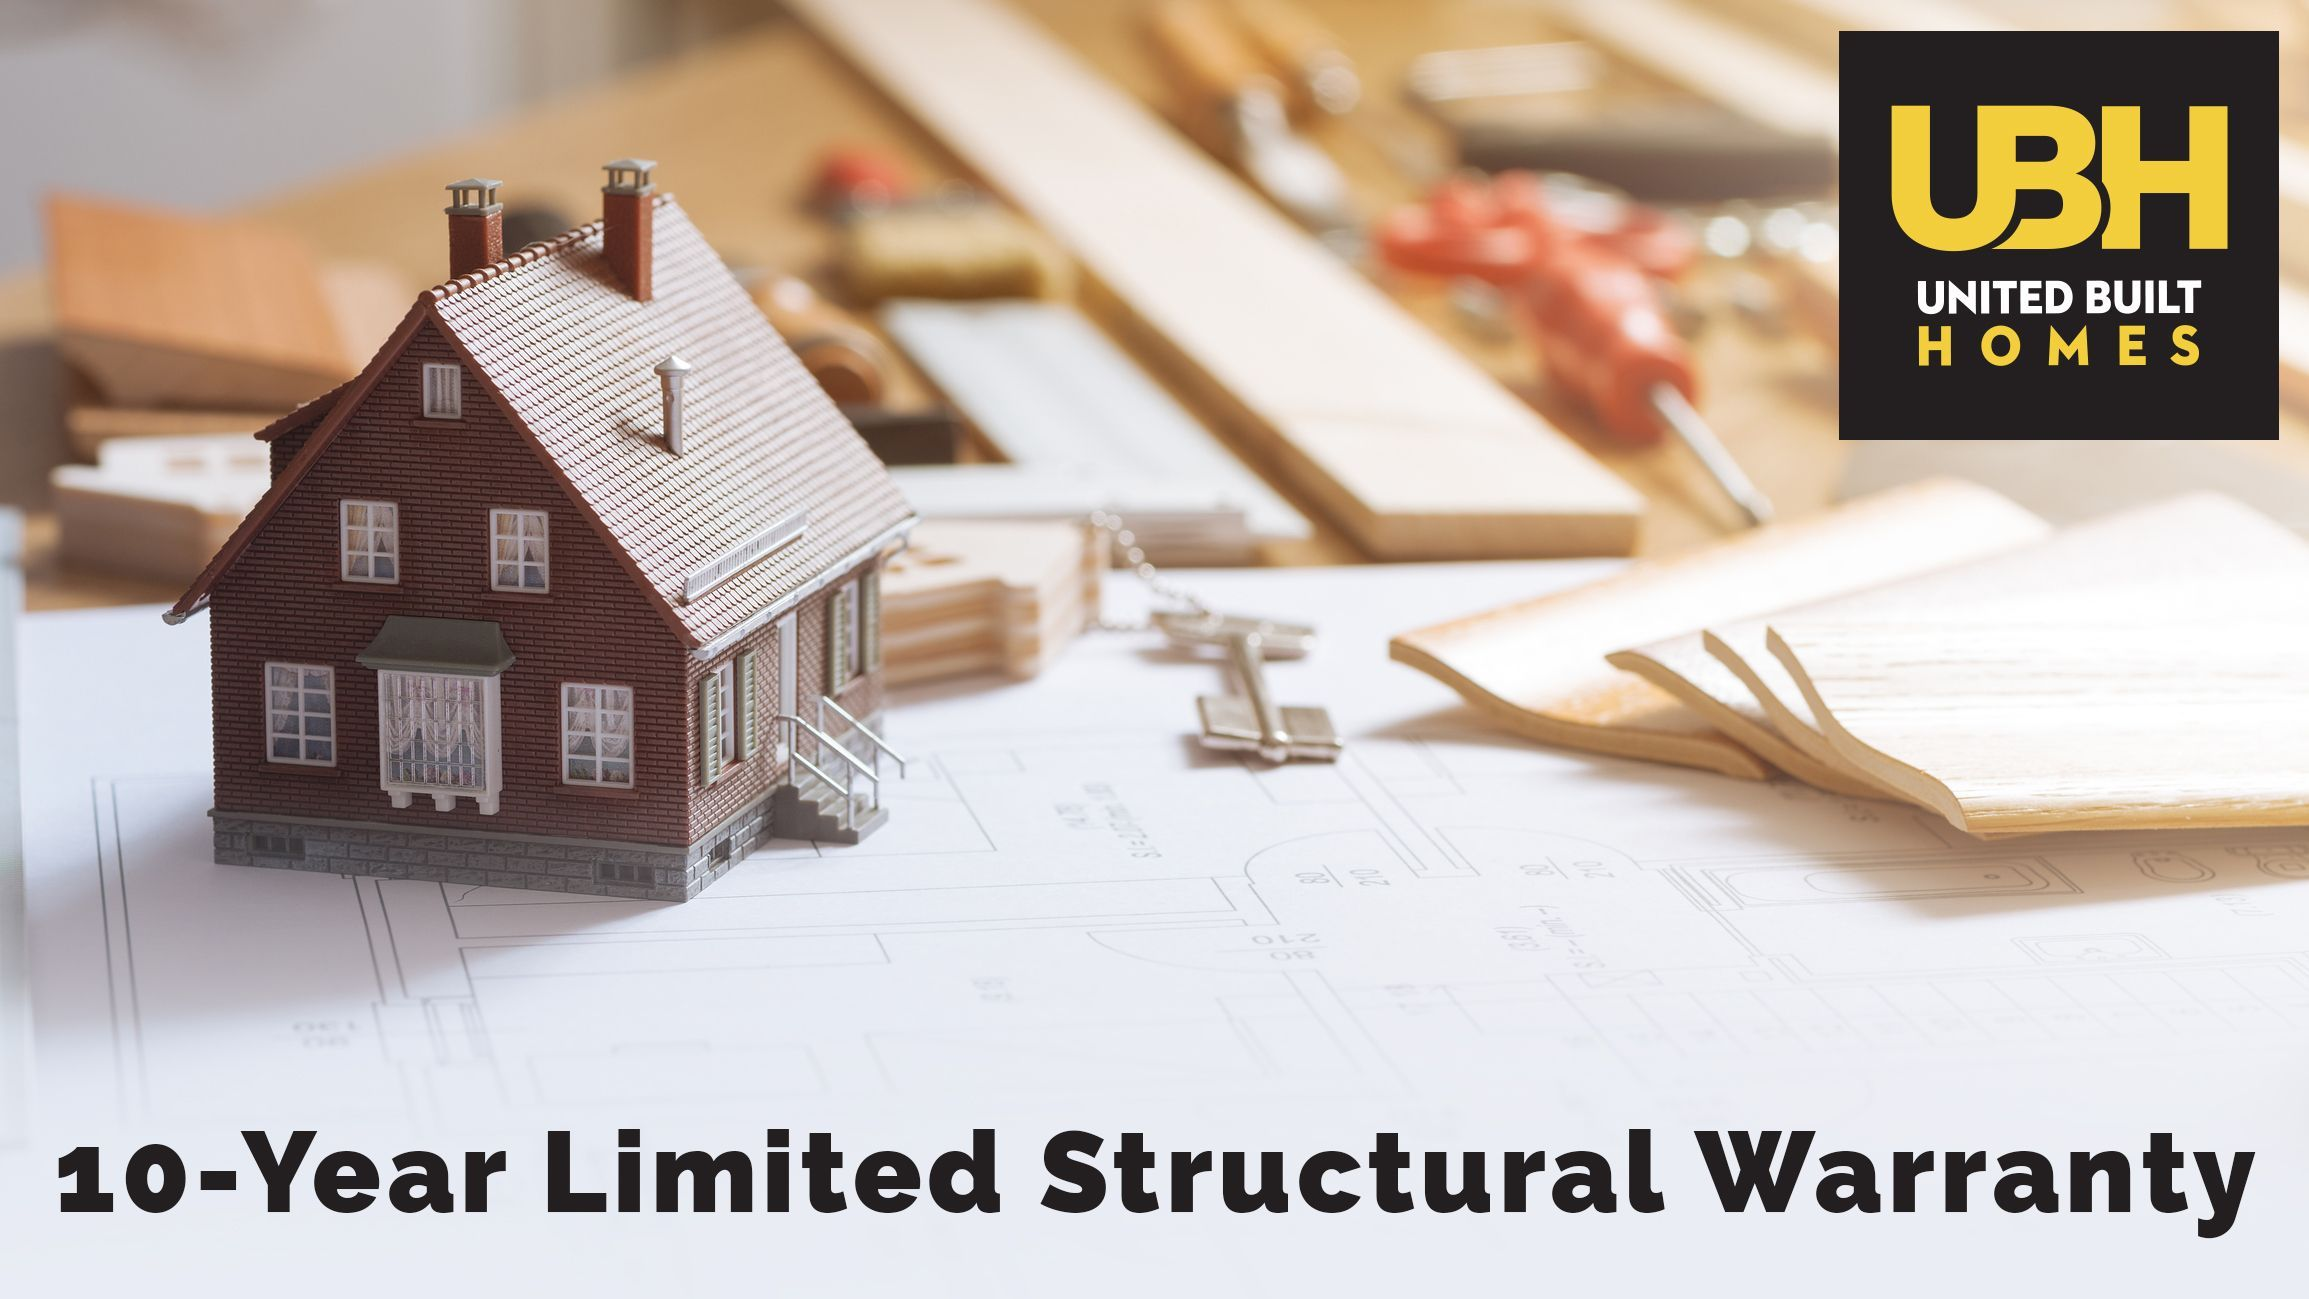 Did You Know That Ubh Offers A 10 Year Limited Structural Warranty